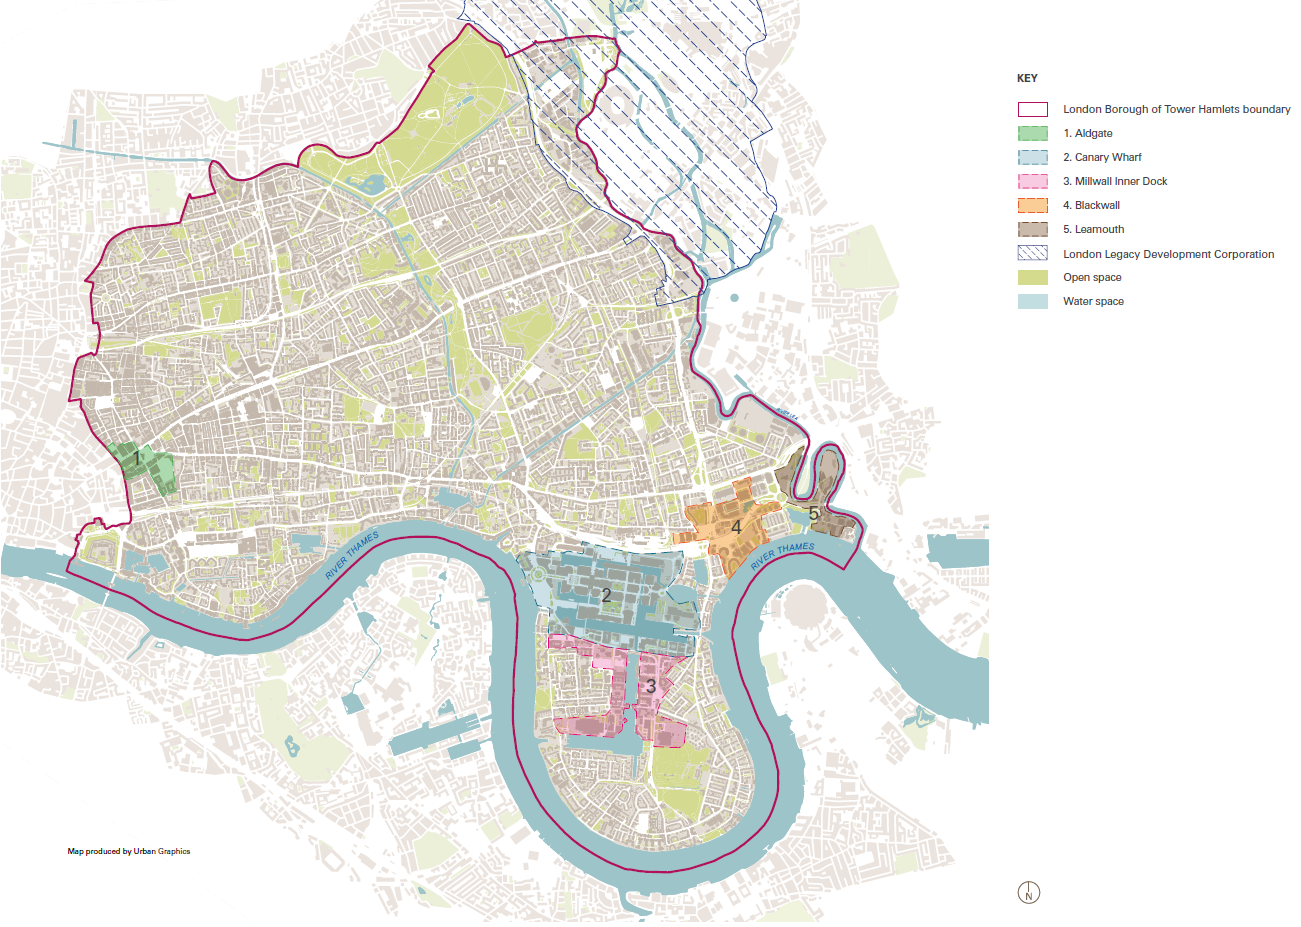 Tower Hamlets Tall Building Zones (Figure 7: Tower Hamlets Local Plan)